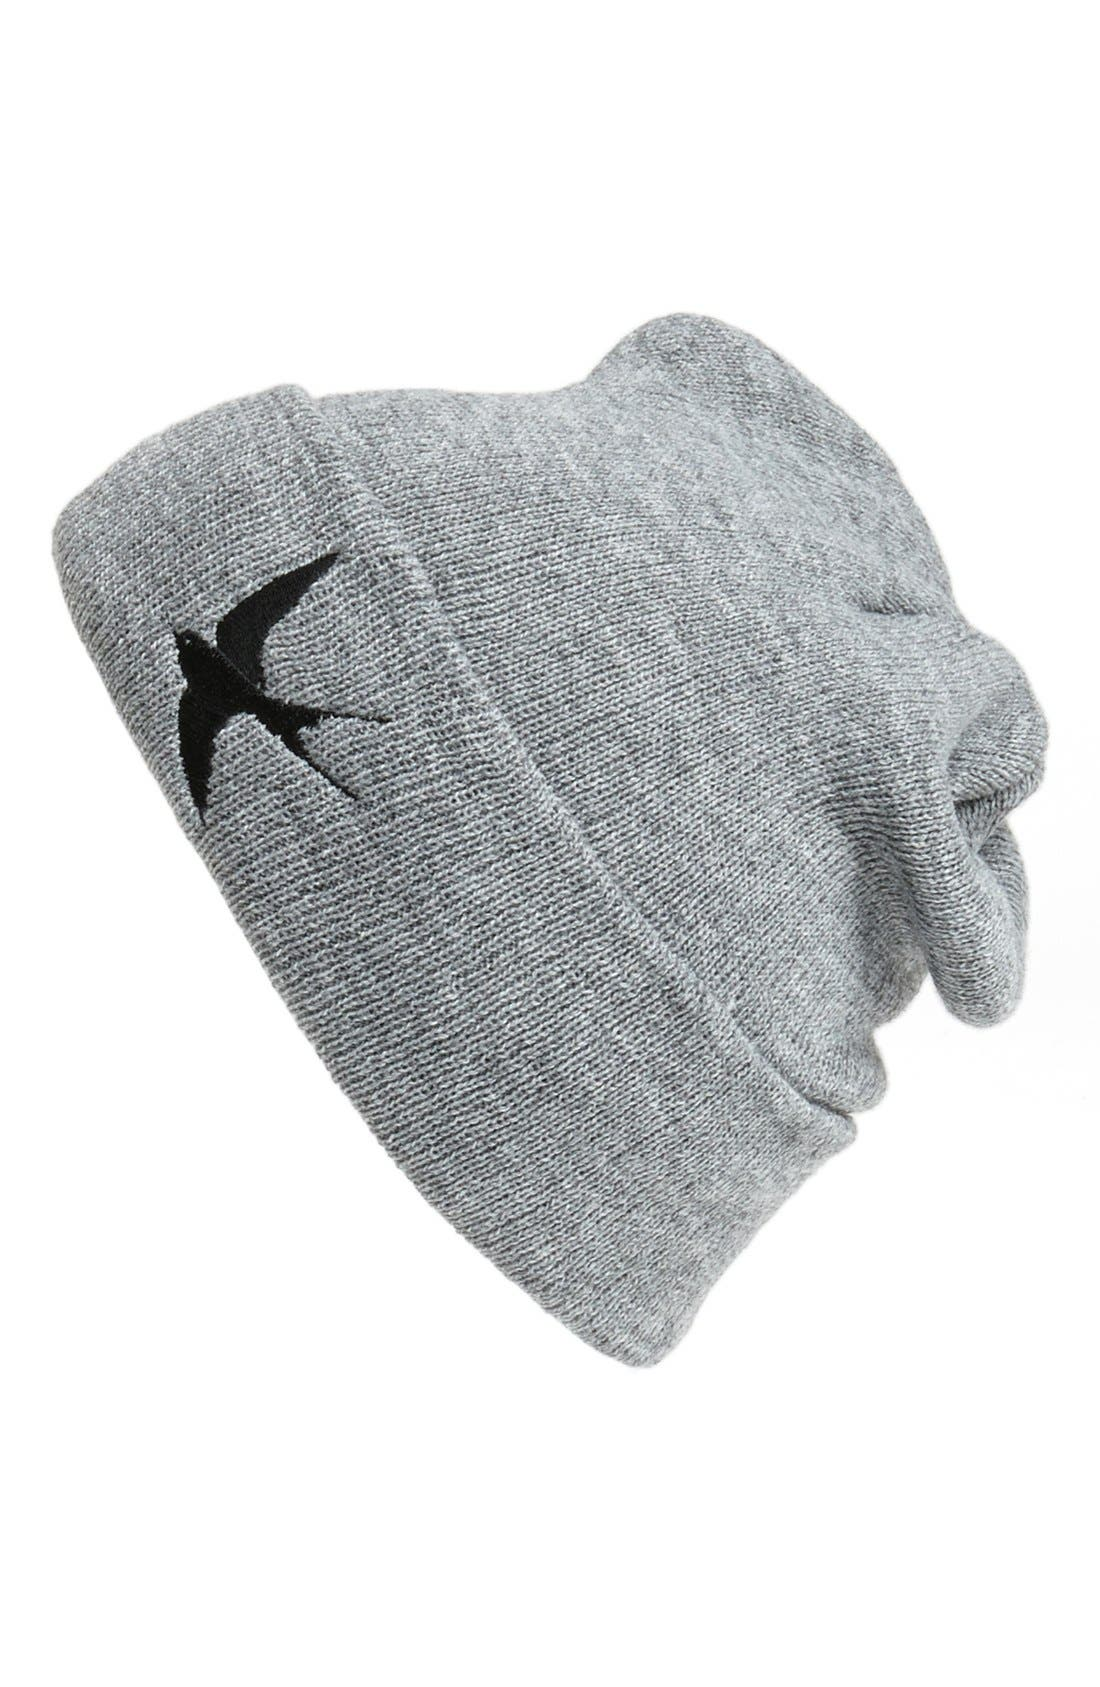 Alternate Image 1 Selected - In Record Time 'Swallow' Beanie